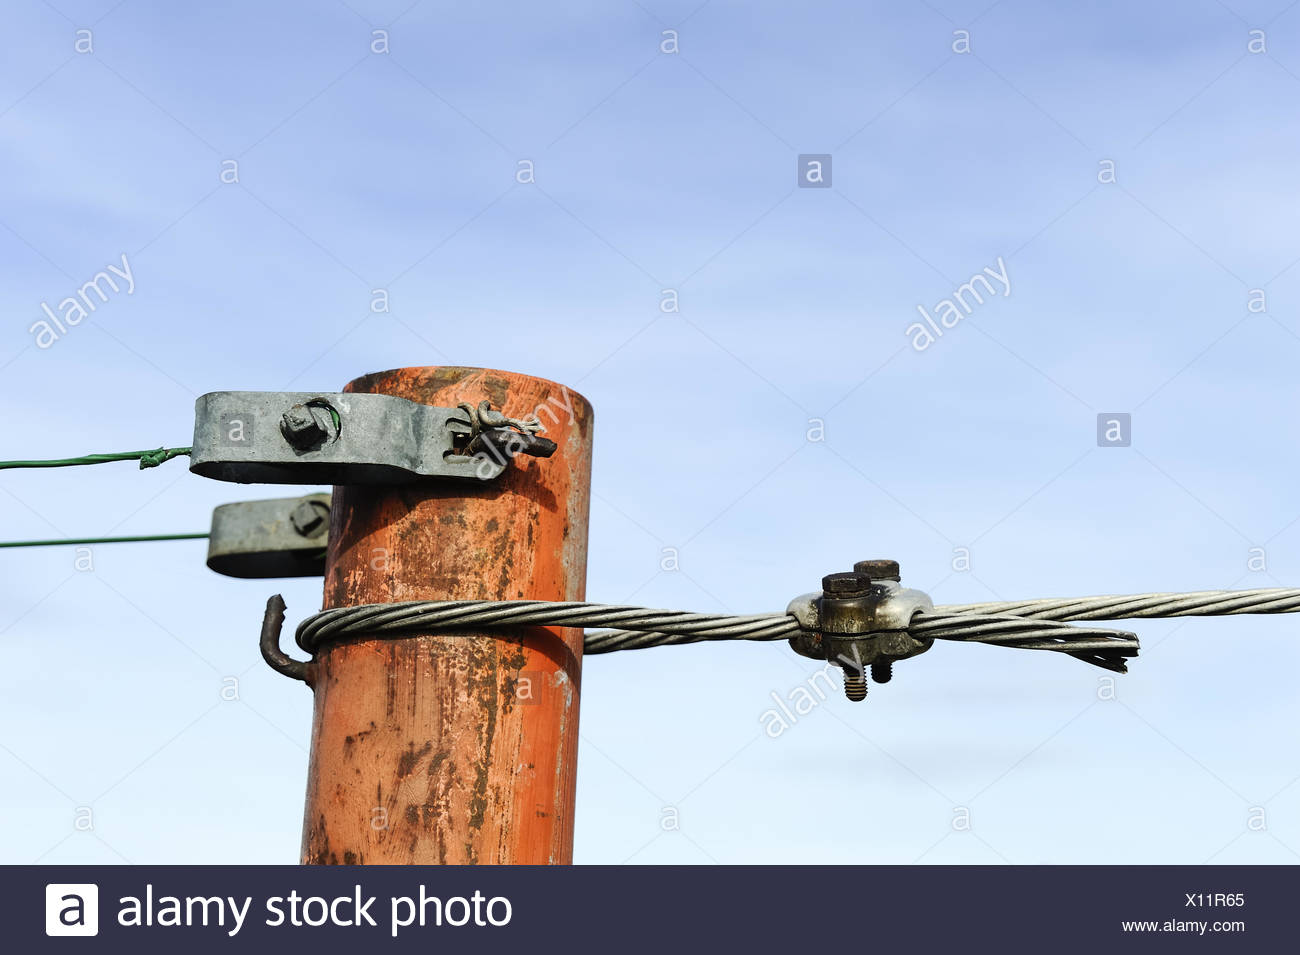 Tension wire with uprights in Vineyard - Stock Image